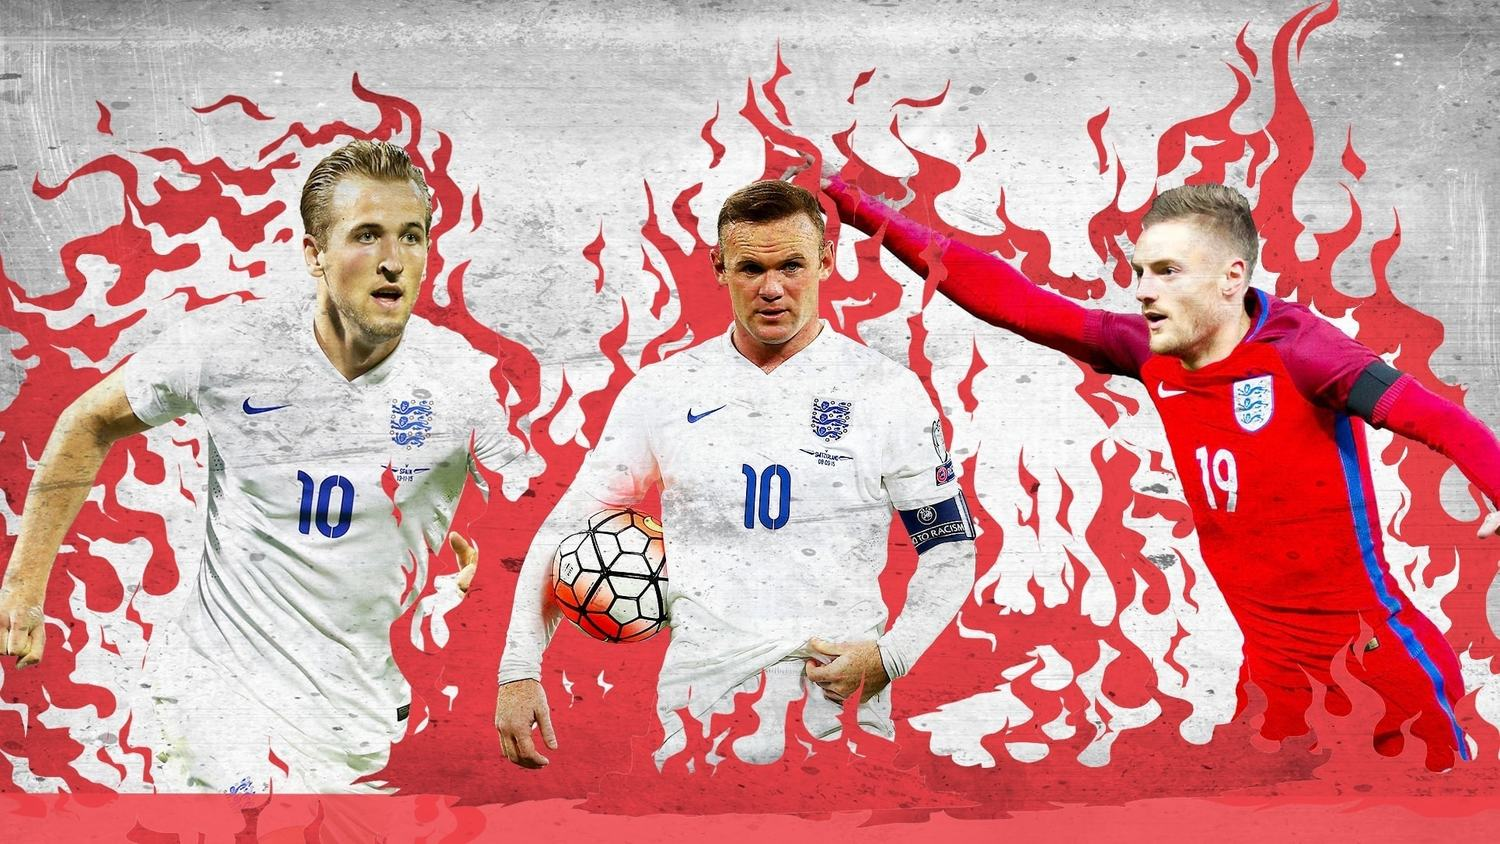 Can this England team really win the Euros?